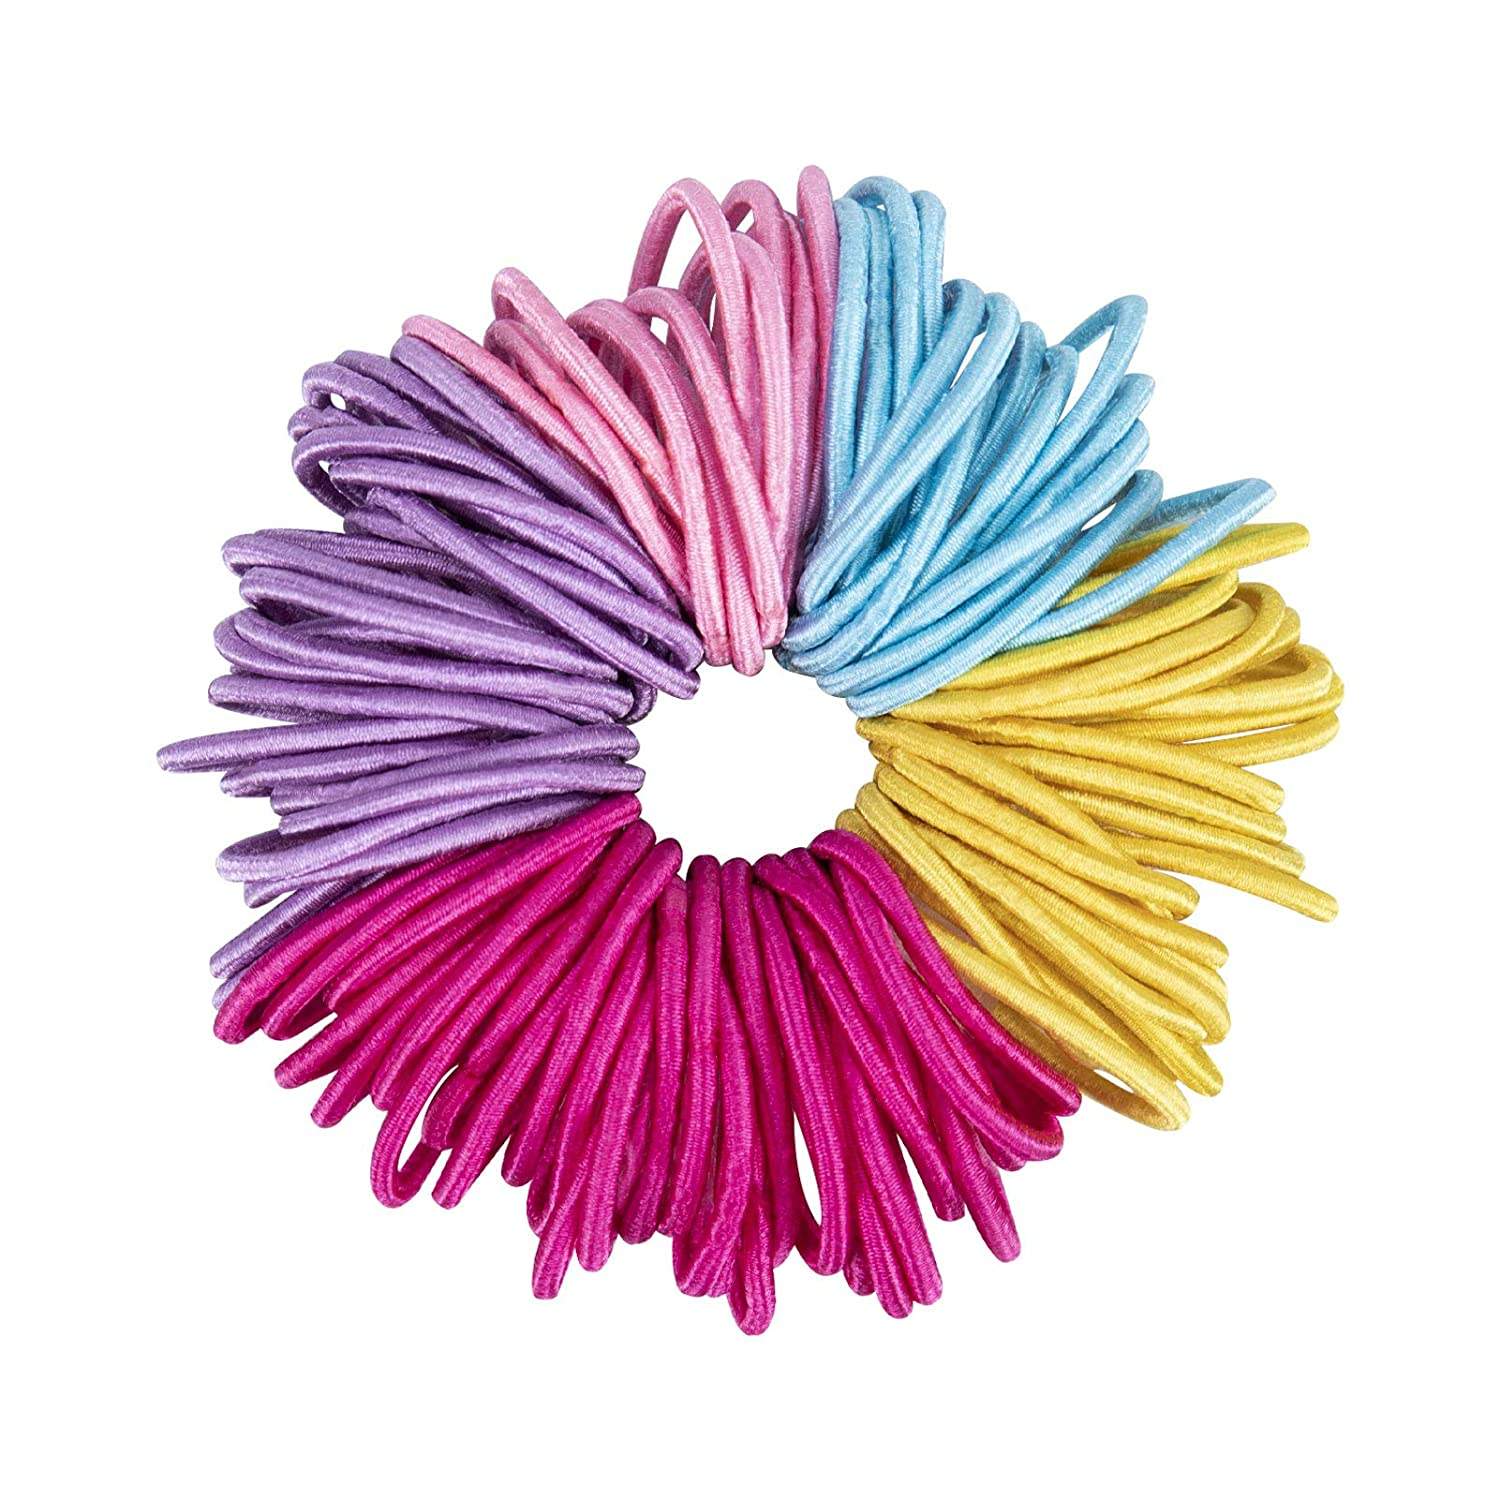 100 Pcs Baby Girls Hair Ties, No Crease Soft Hair Ropes Elastic Rubber Bands, Hair Accessories for Kids Girls Infants Toddlers